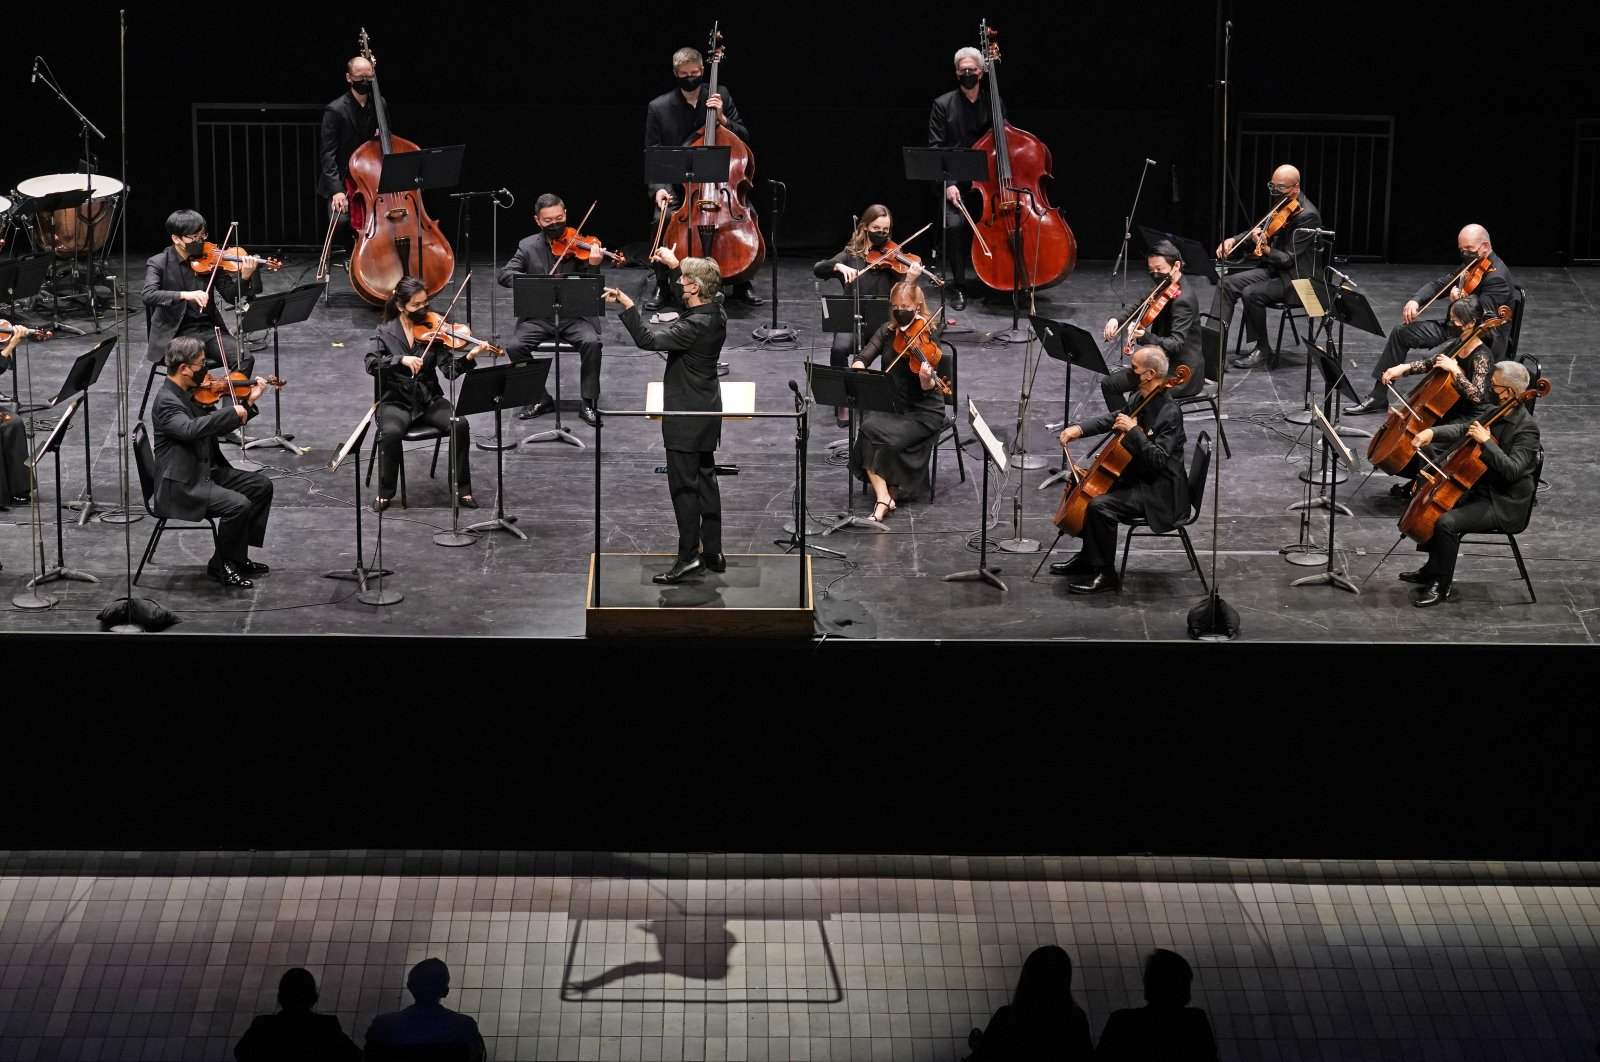 Essa-Pekka Salonen (C) leads the New York Philharmonic before an audience of 150 concertgoers at The Shed in Hudson Yards, New York, U.S., Wednesday, April 14, 2021. (AP Photo)